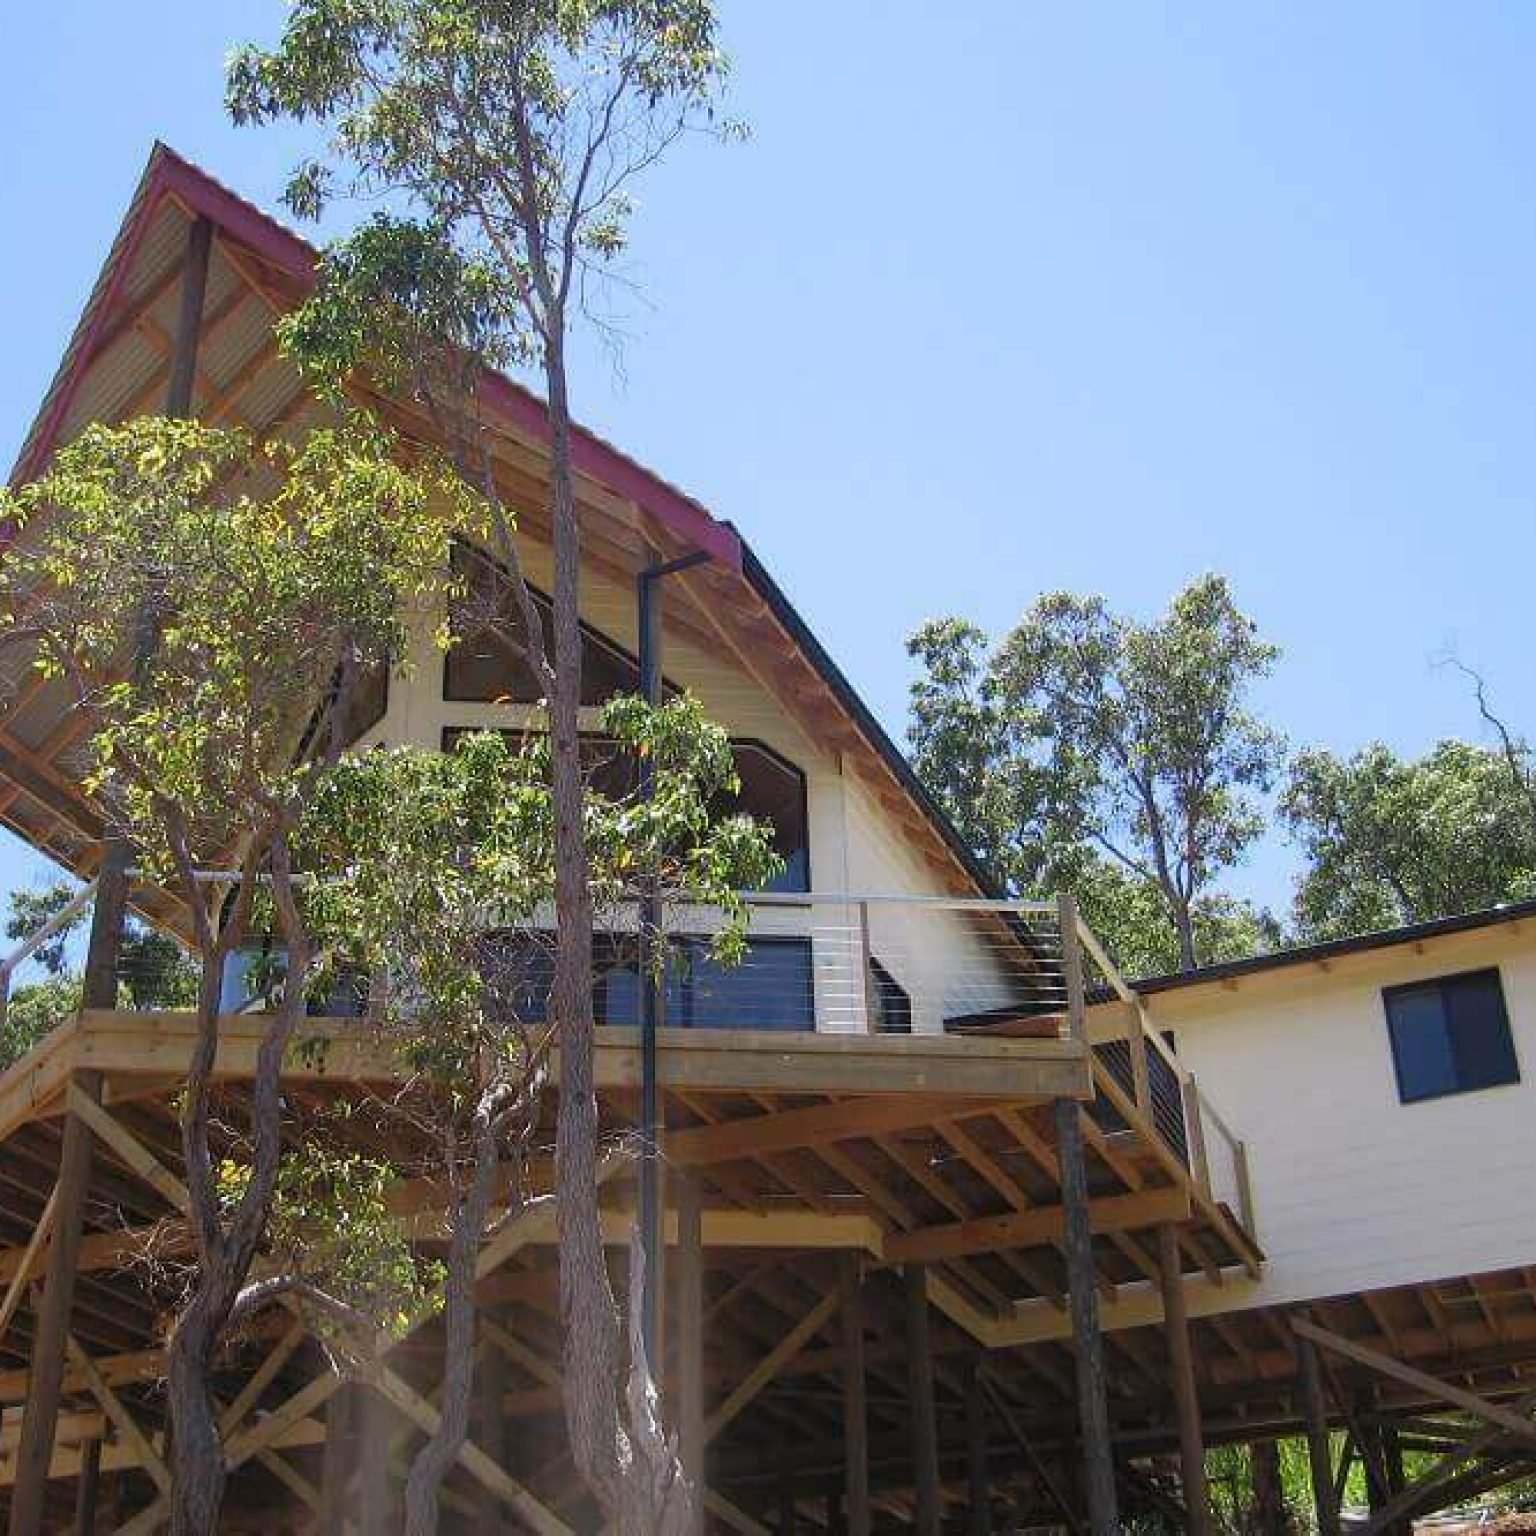 Custom built timber framed pole home in Roleystone, Western Australia.